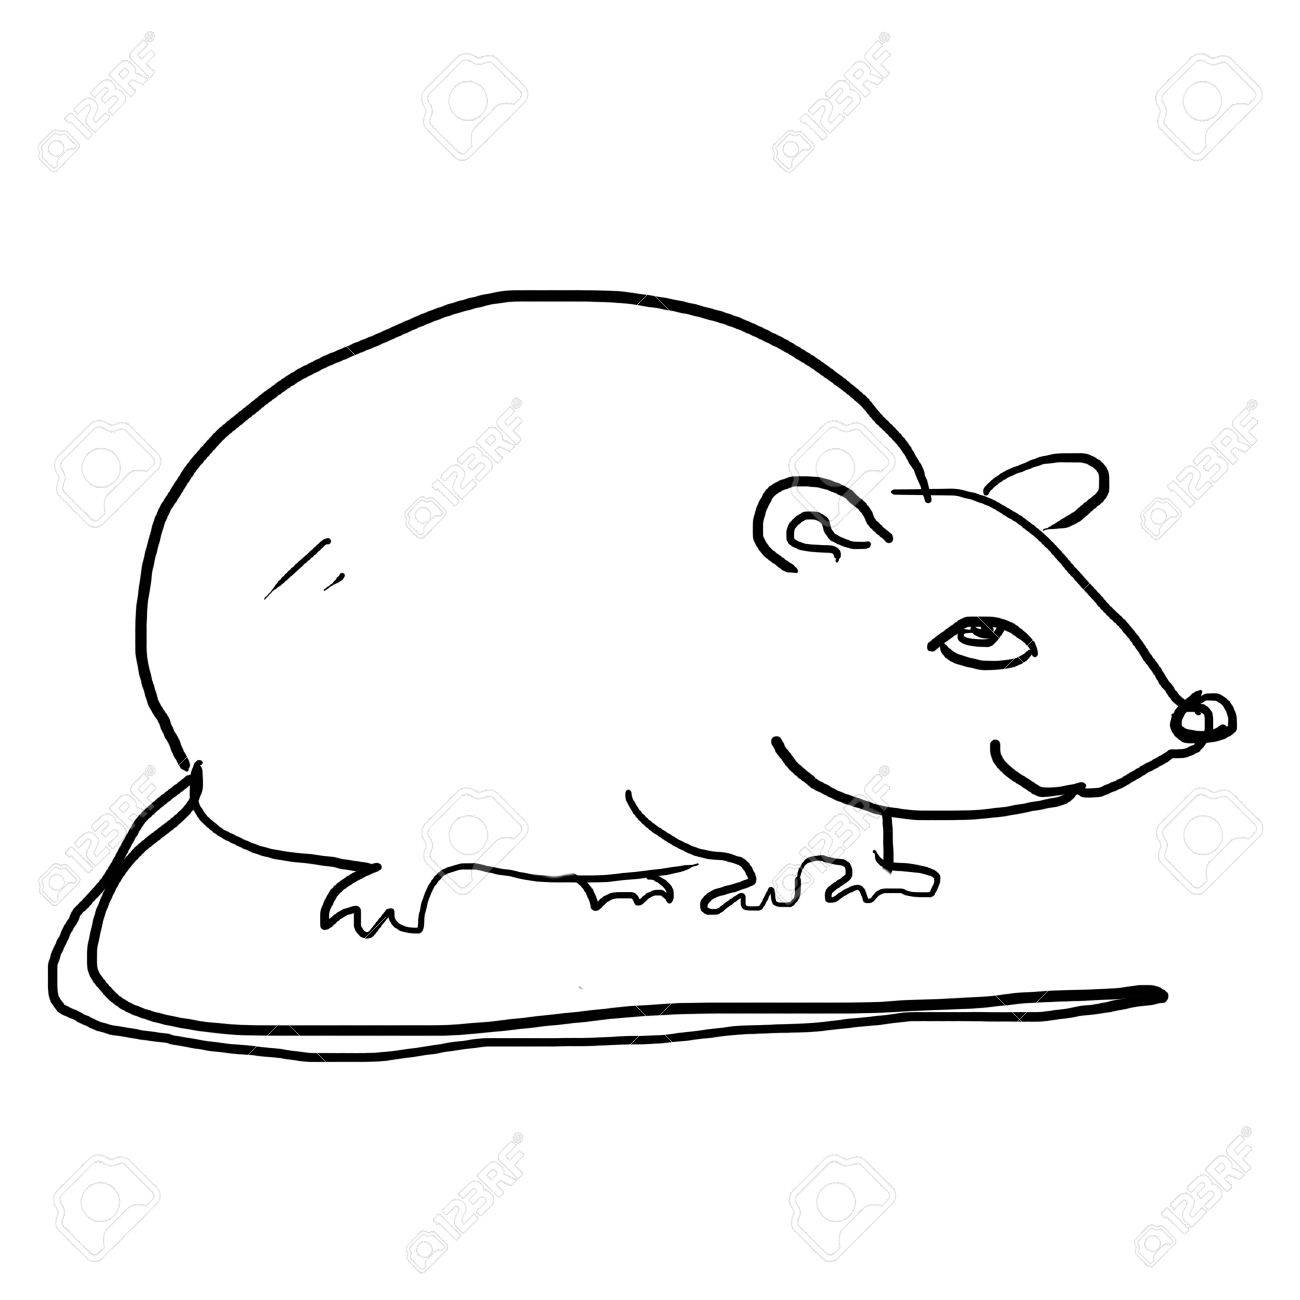 1300x1300 Drawing Of Rat On The White Stock Photo, Picture And Royalty Free